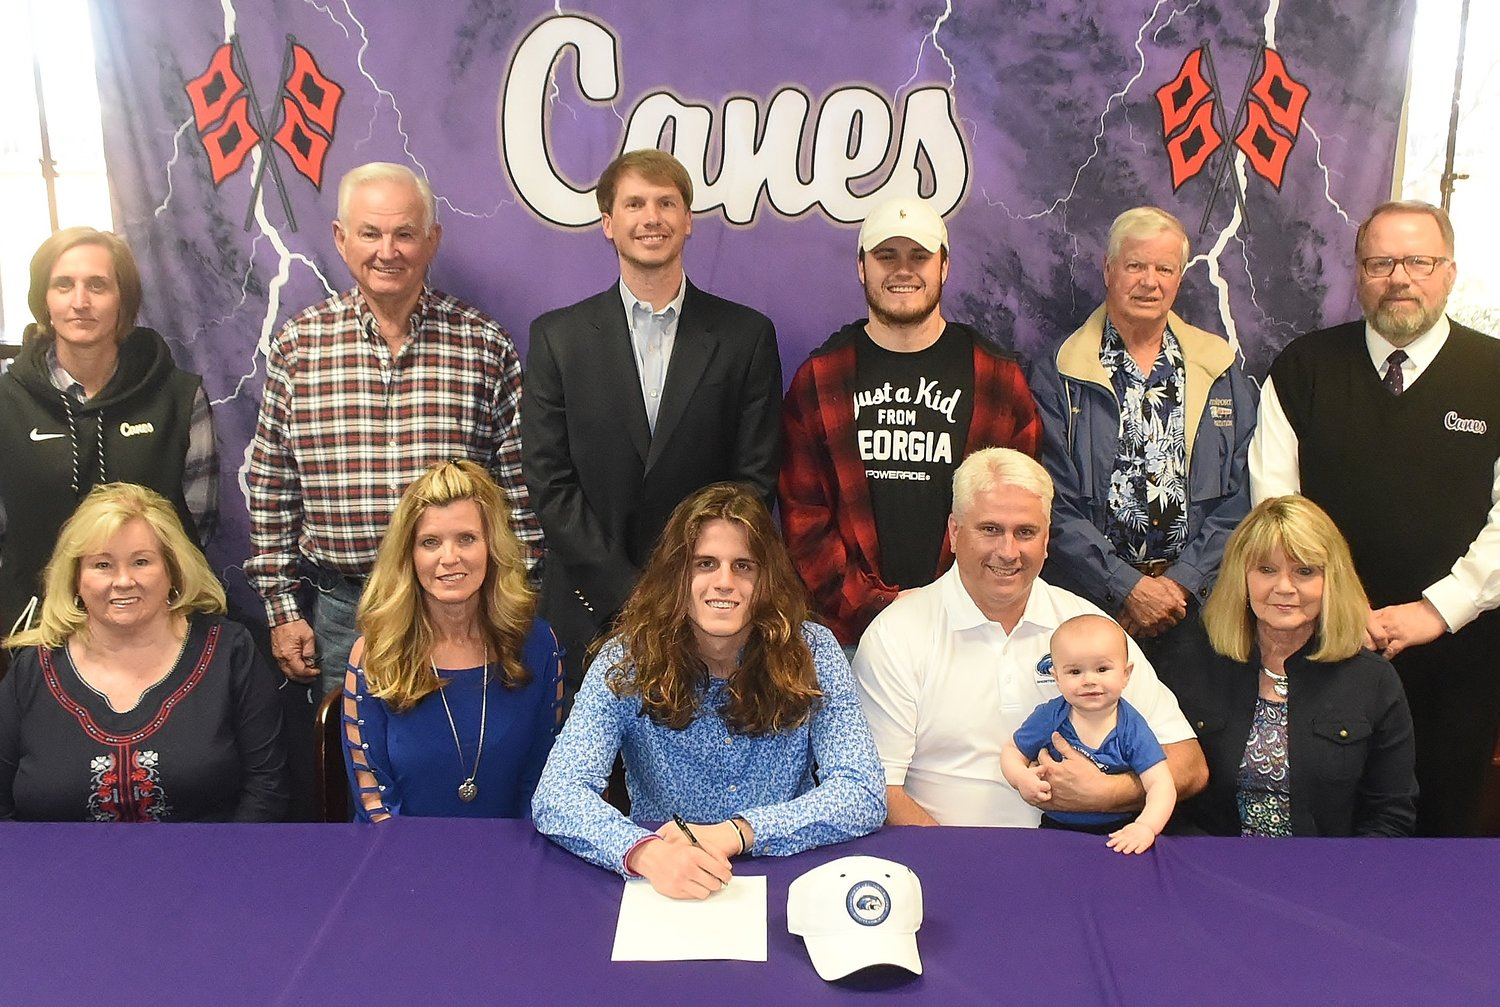 Cartersville High School senior Tristan Carlton signed to play football at Shorter University in Rome. On hand for the signing were, from left, front row, Martha Carlton, grandmother; Renae Carlton, mother; Robbie Carlton, father; Colt Carlton, nephew; Brenda Guy, grandmother; back row, Shelley Tierce, CHS principal; Tom Carlton, grandfather; Conor Foster, CHS head football coach; Trevor Carlton, brother; Billy Guy, grandfather; and Darrell Demastus, CHS athletic director.